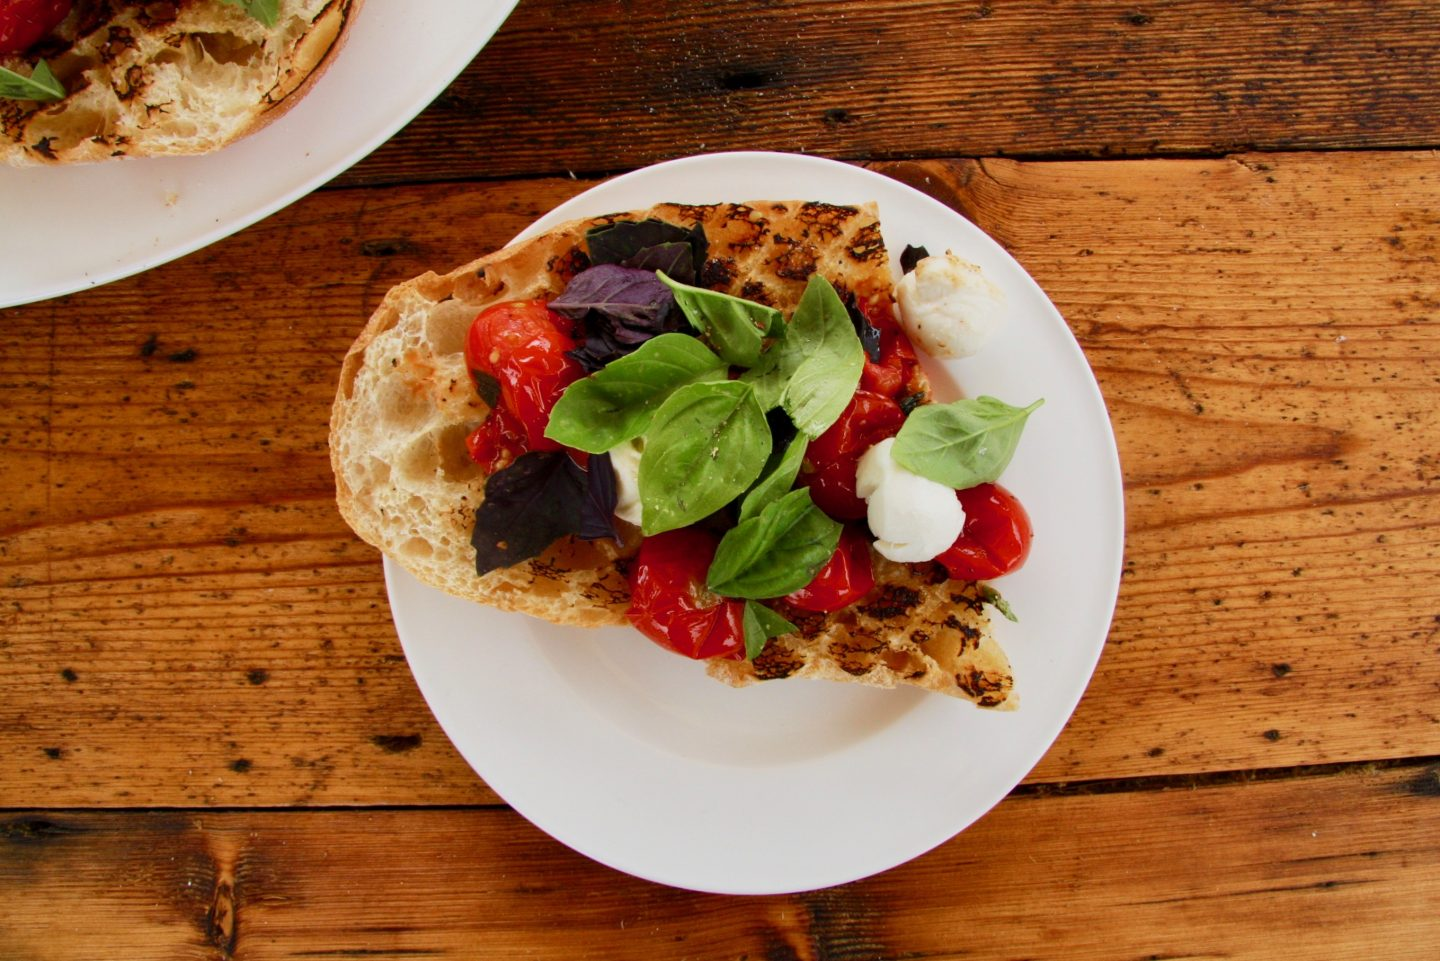 http://cherrymenlove.com/2019/08/27/how-to-make-bruschetta-a-family-favourite/